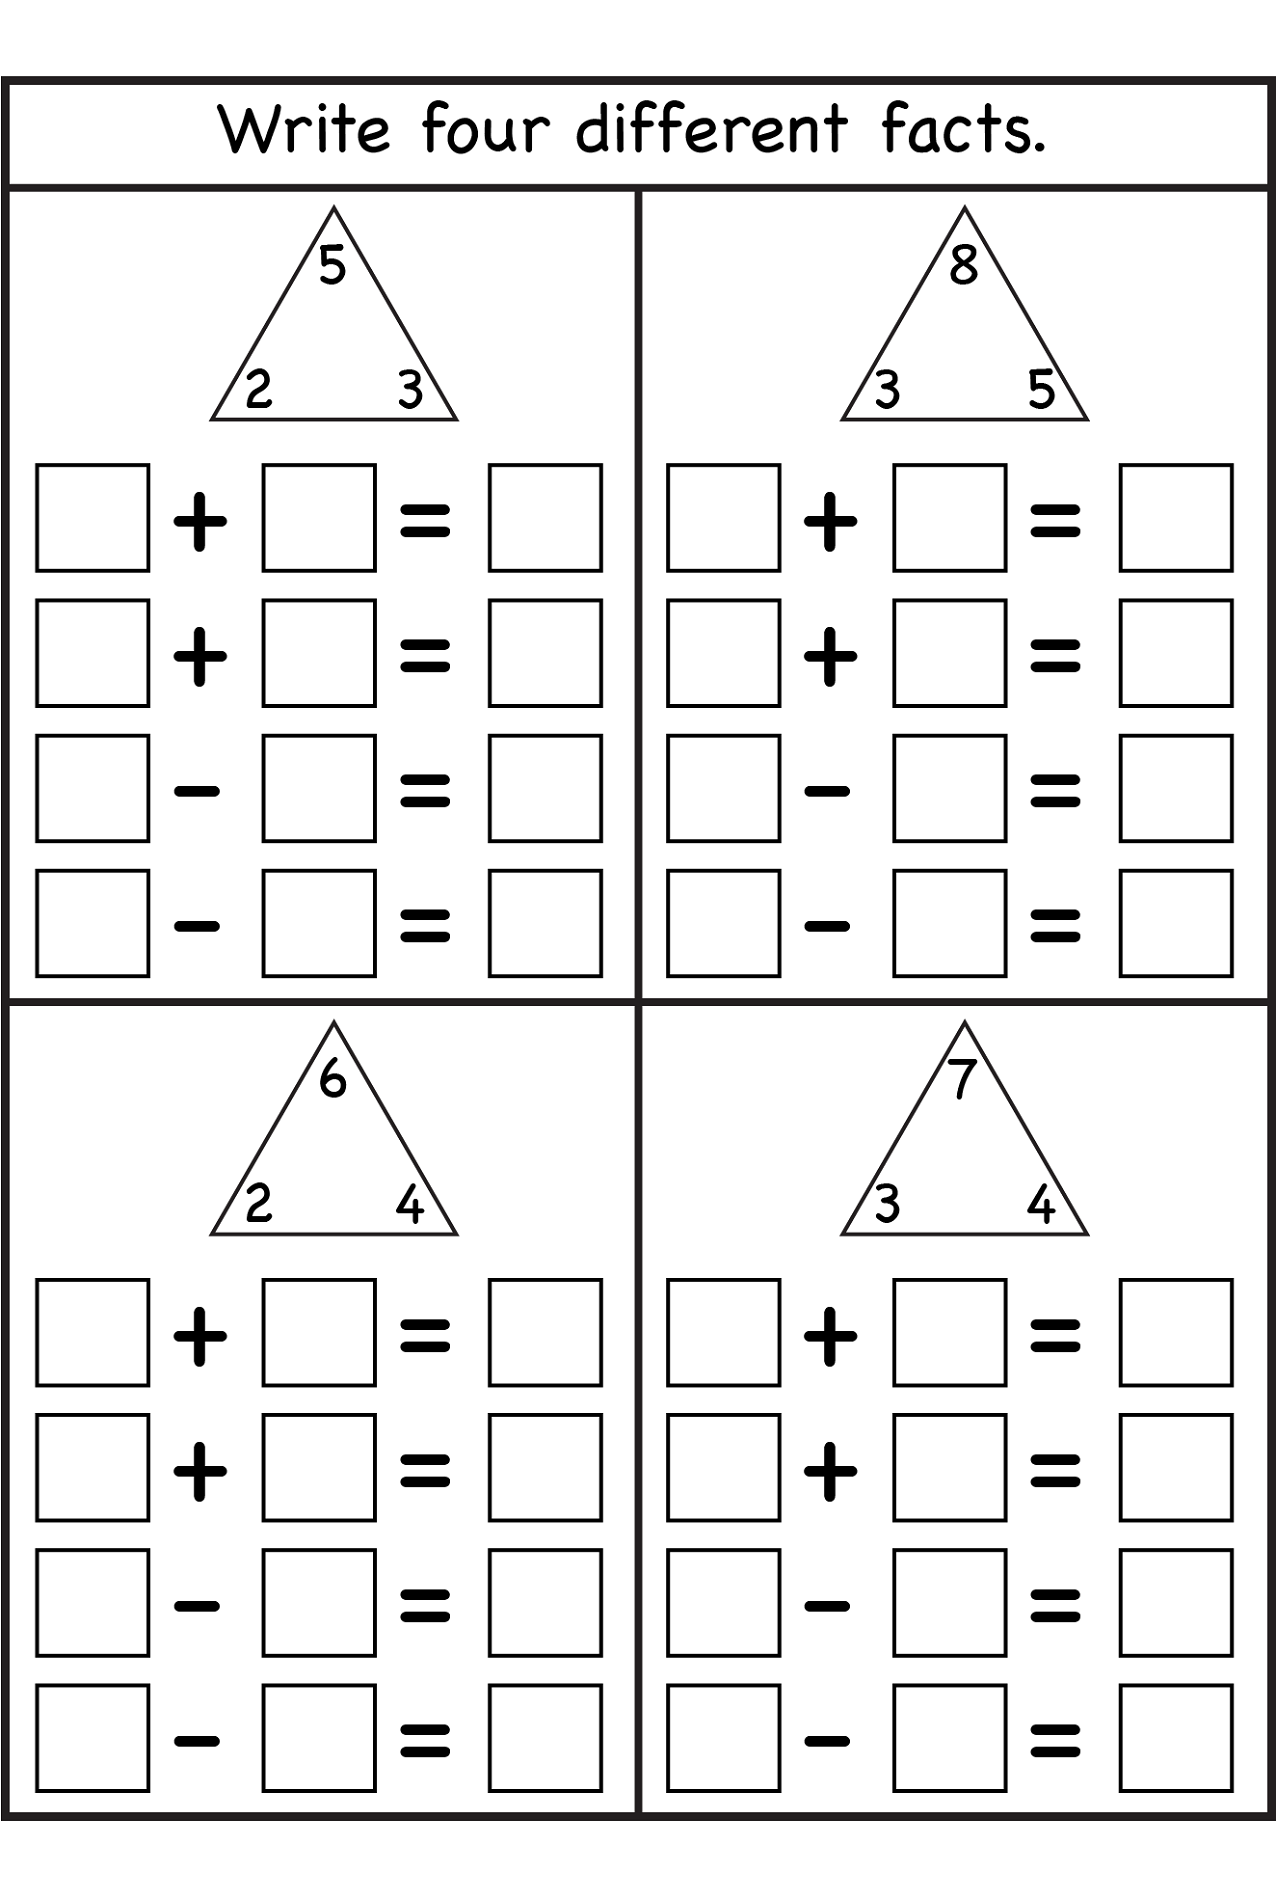 Worksheet Fact Families Worksheets blank fact family worksheets activity shelter printable